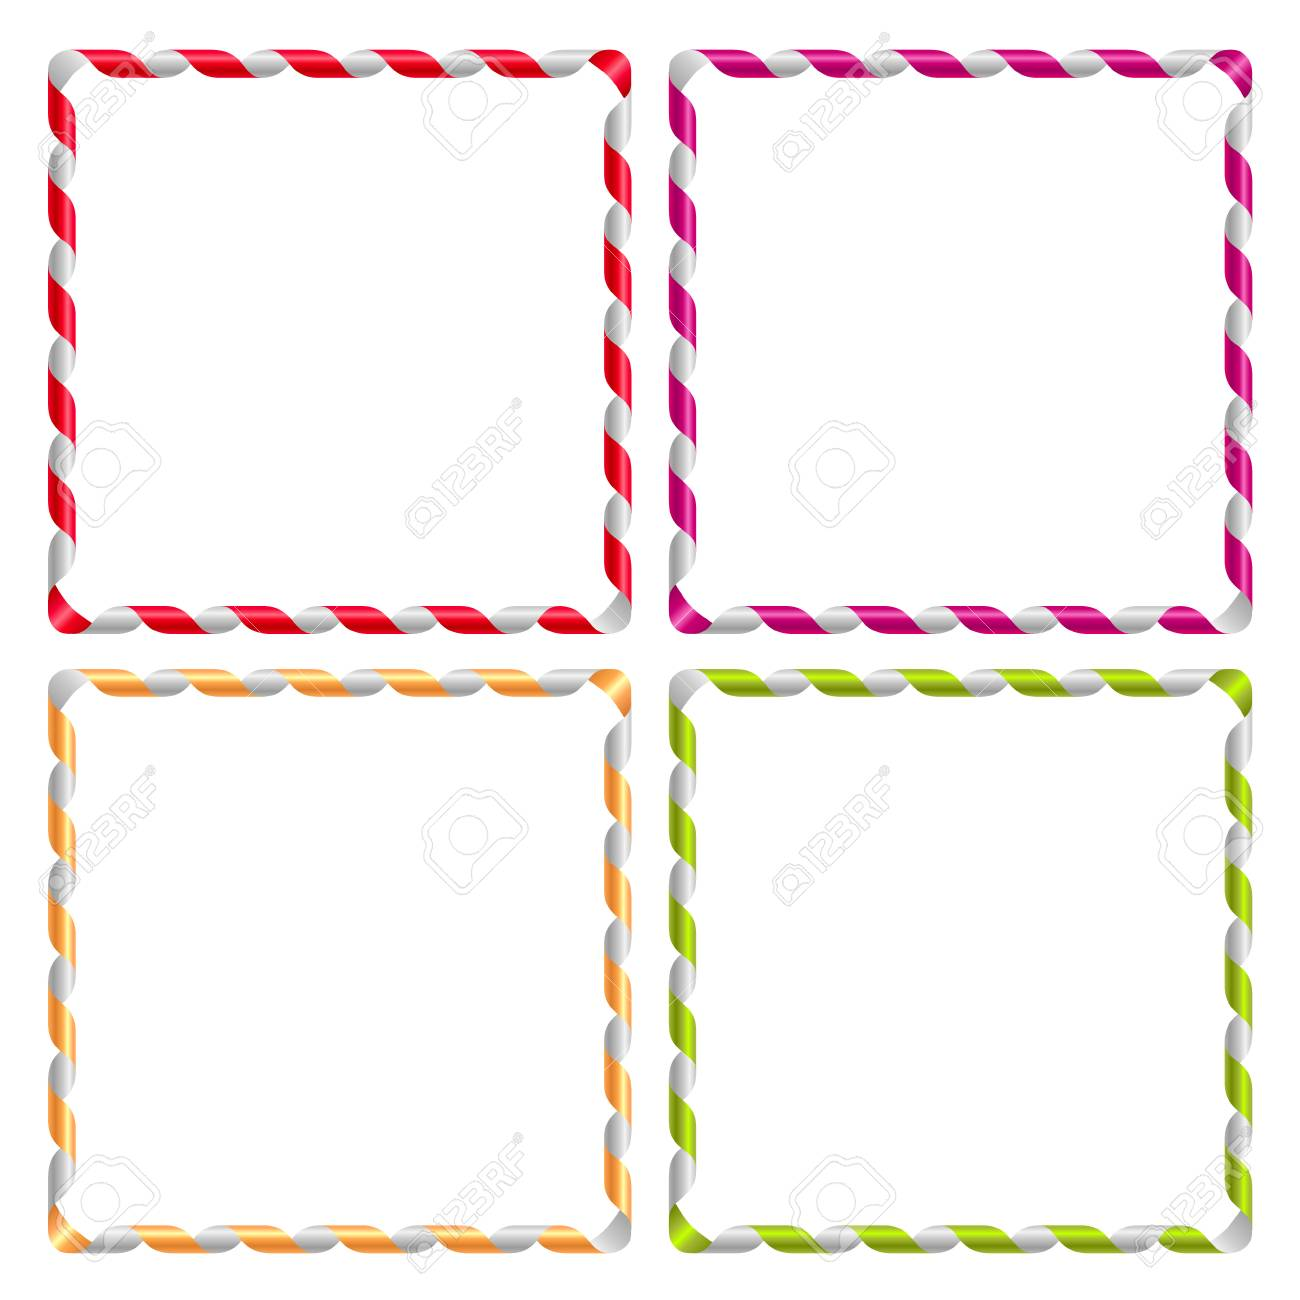 The Set Of Square Holiday Frames Made Of Curly Ribbons Royalty Free ...